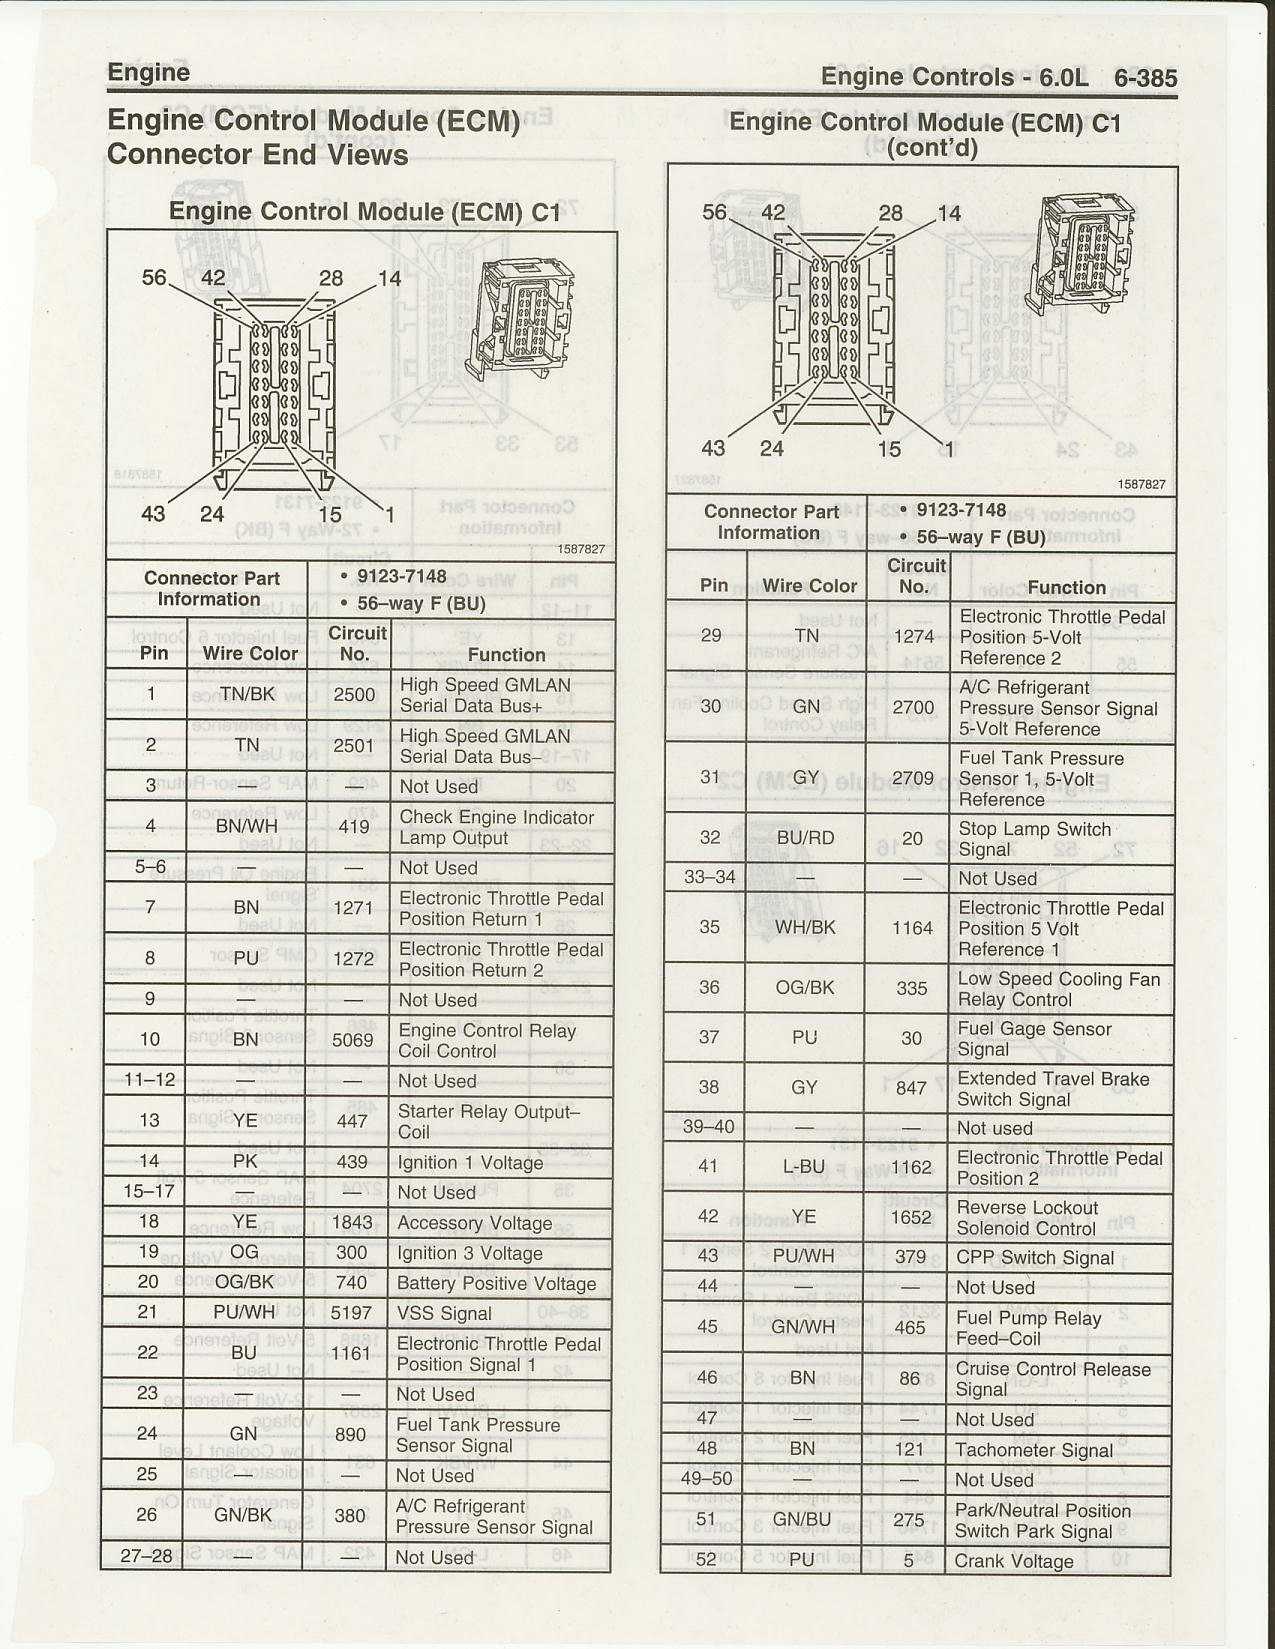 2009 10 Truck Wiring Diagram Forums 2005 Dodge Ram Srt